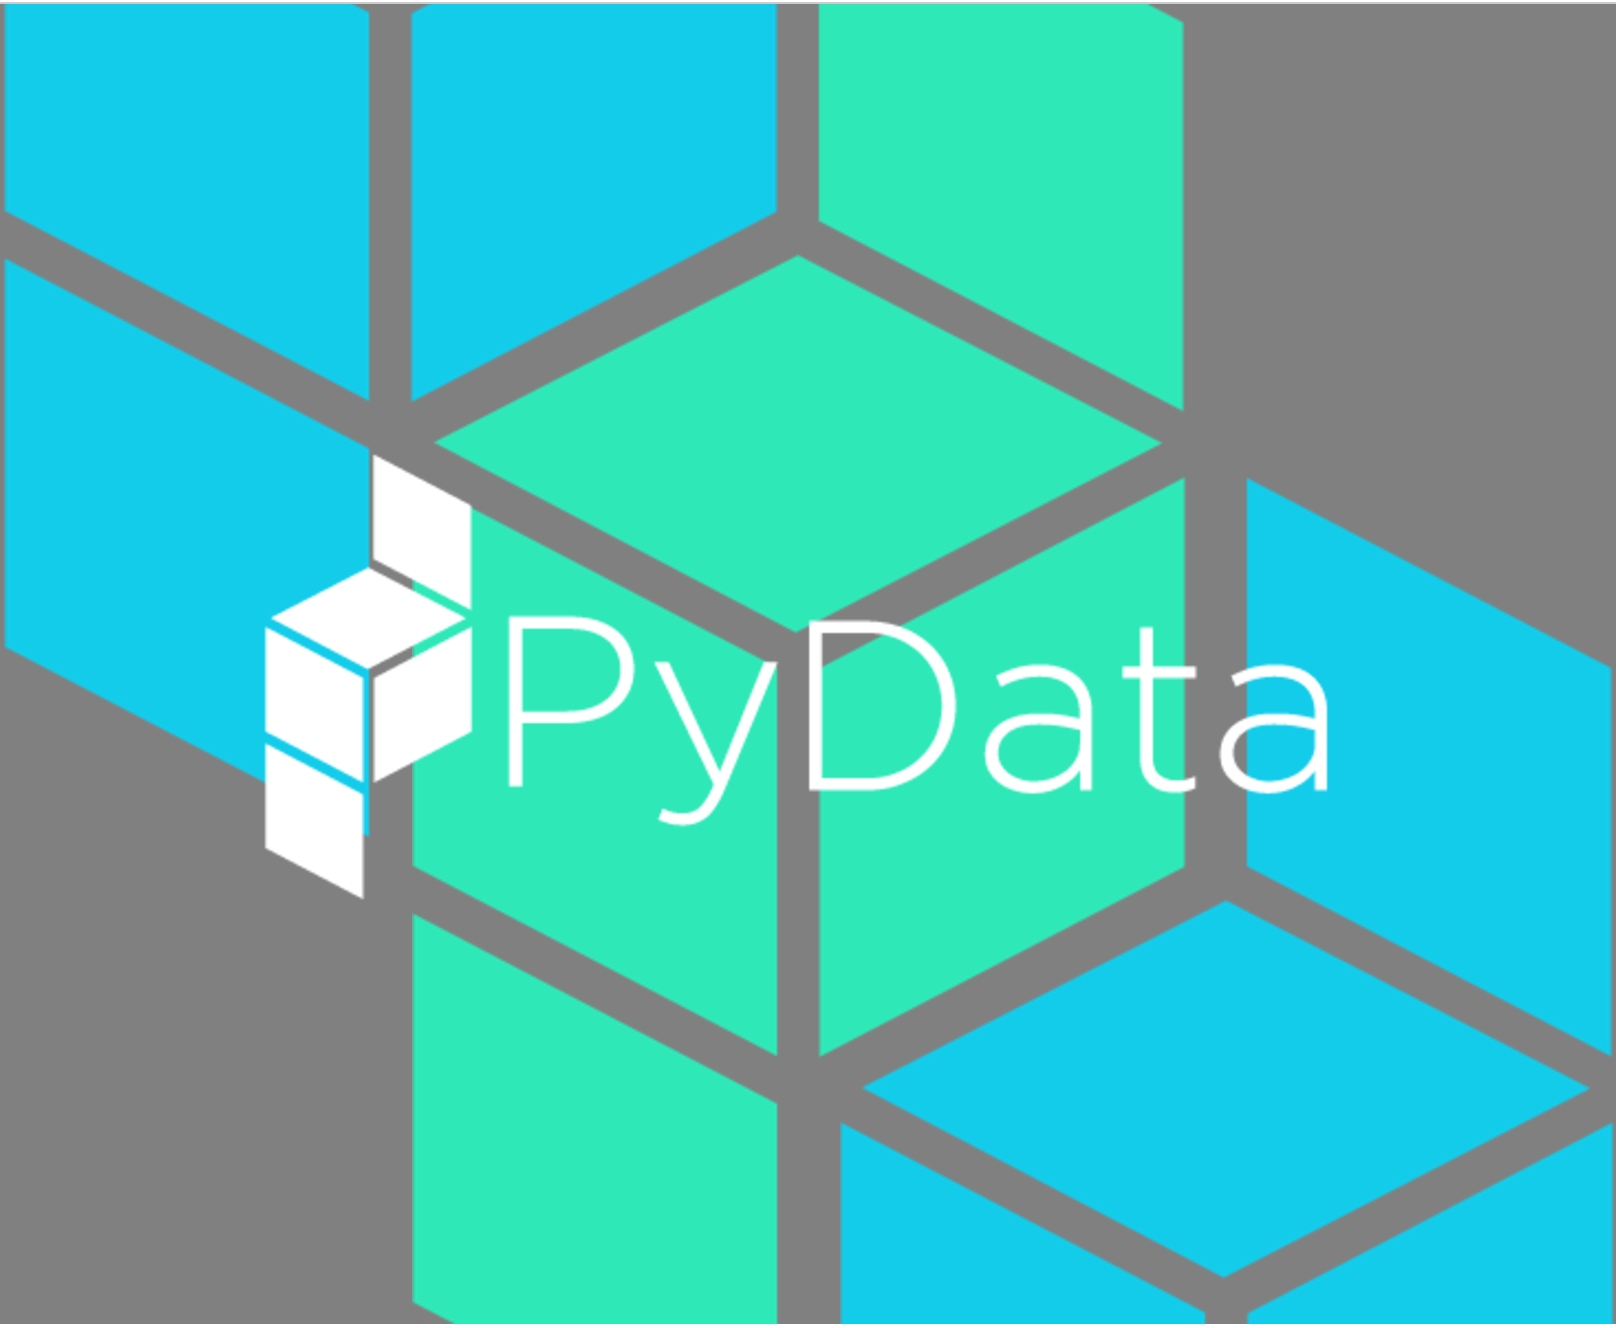 PyData London 2016 Logo